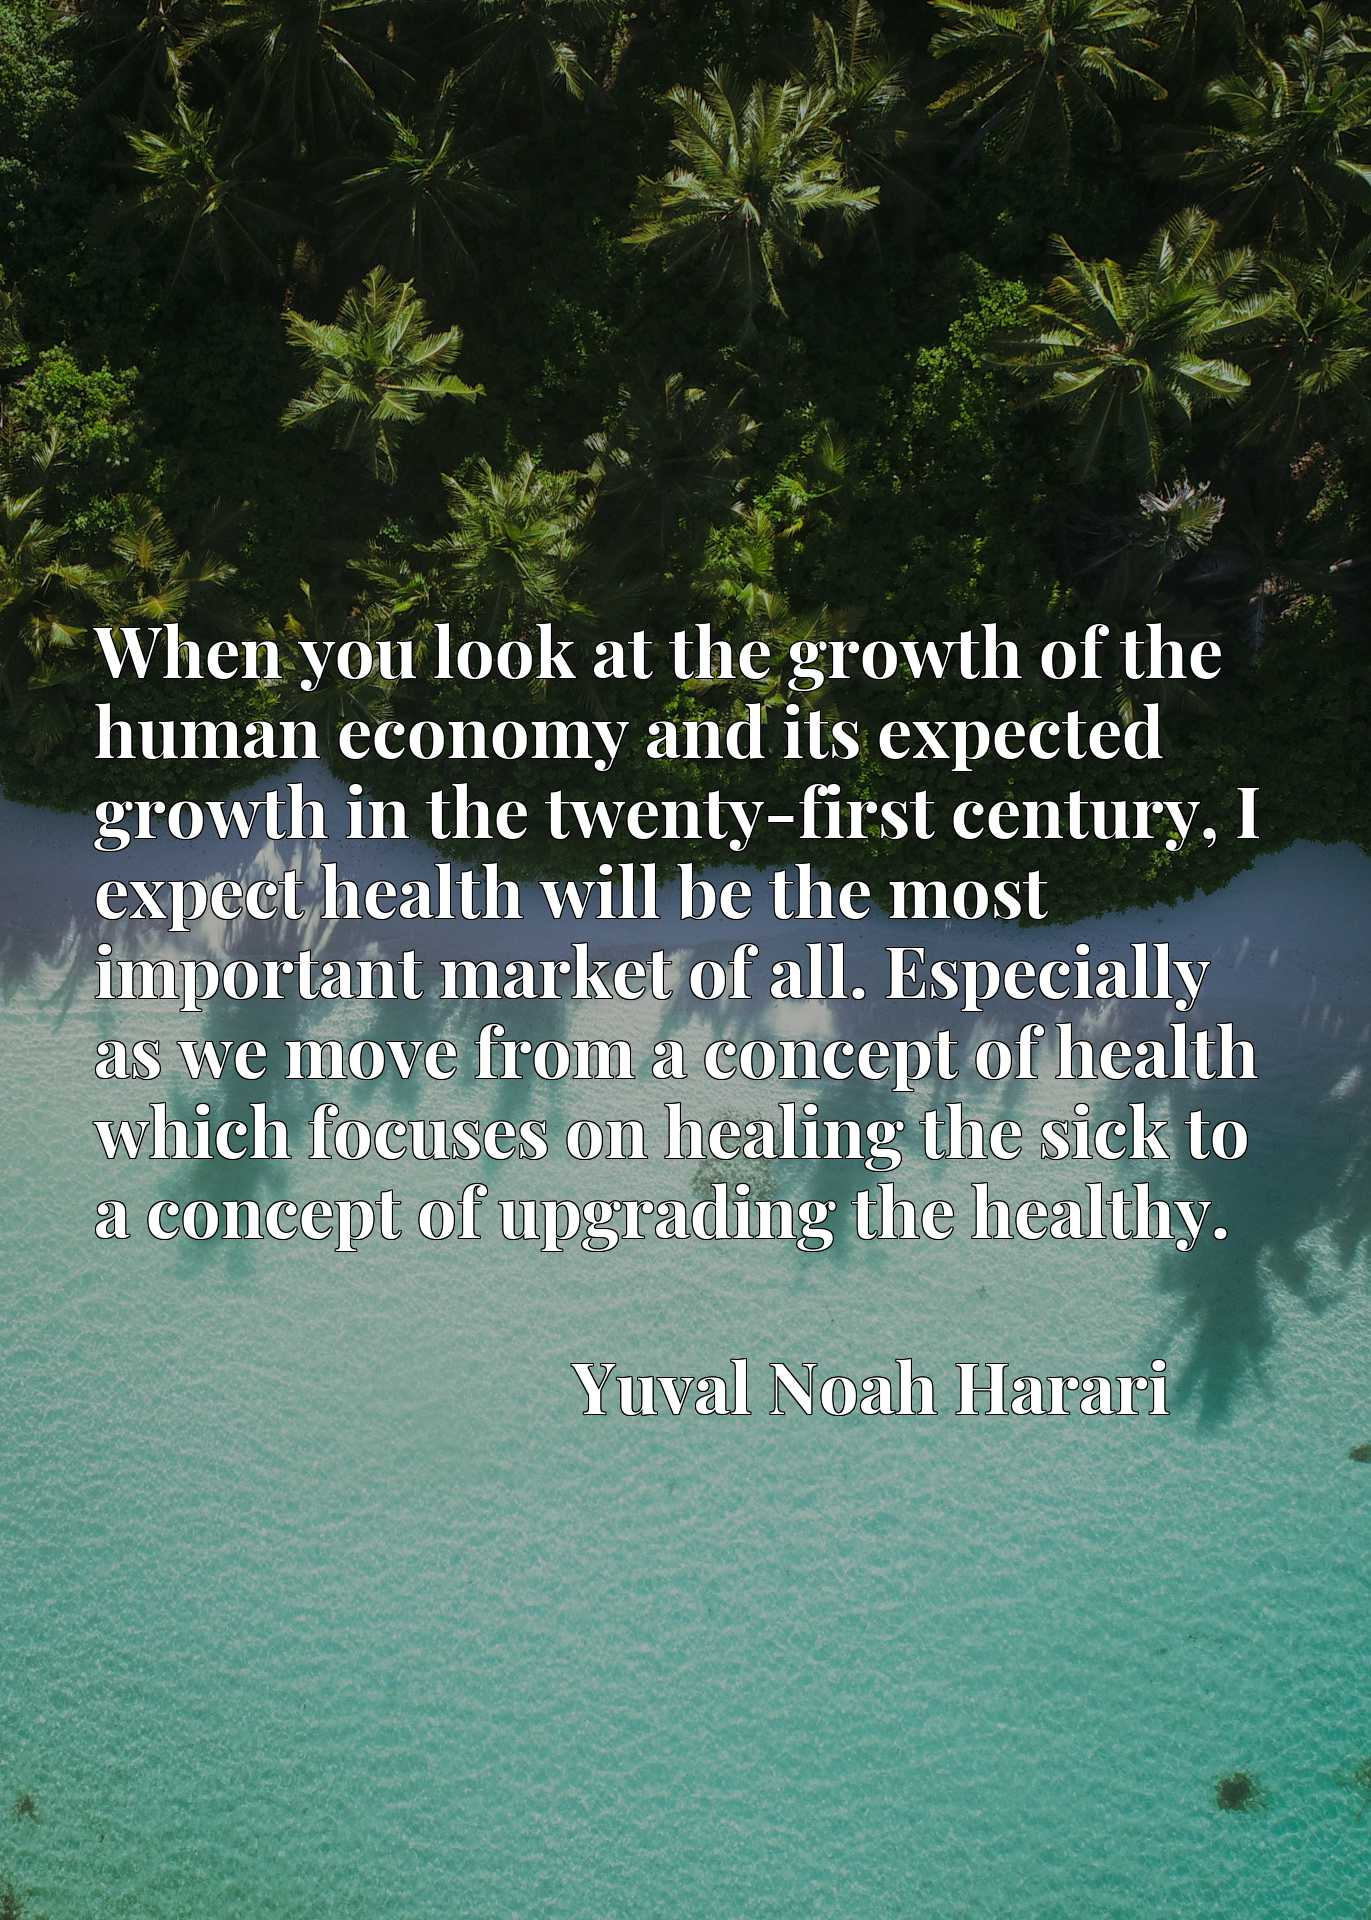 When you look at the growth of the human economy and its expected growth in the twenty-first century, I expect health will be the most important market of all. Especially as we move from a concept of health which focuses on healing the sick to a concept of upgrading the healthy.